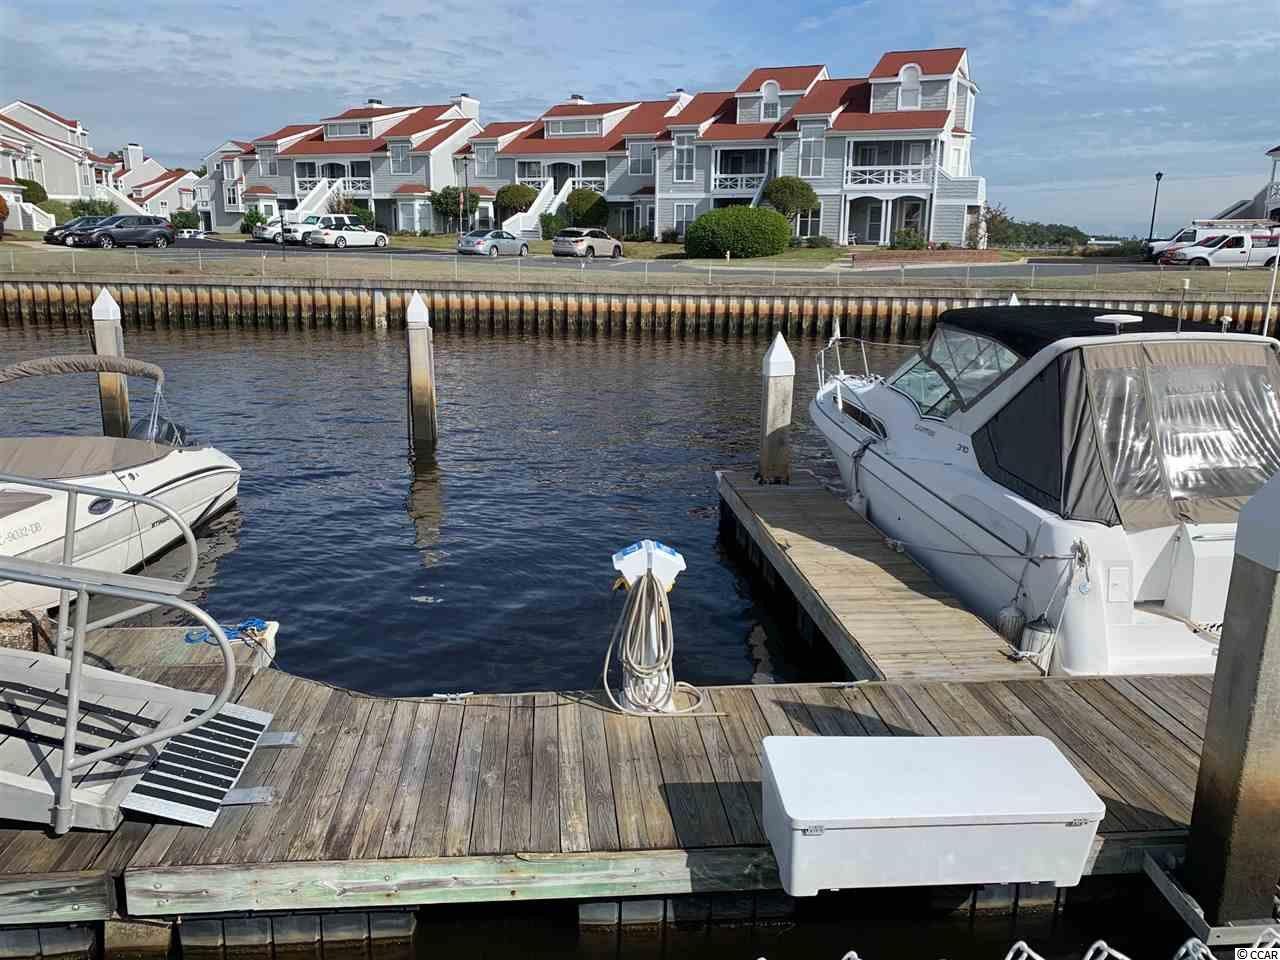 One of the closest slip to the ICW!  Located just at the entrance to the Marina at Mariners Pointe, this 35 ft slip is one of the best locations!  Park right in front of your boat, with ramp and entry gate right in front of the slip.  Mariners Pointe is an upscale waterway community filled with extras!  Boat slip ownership allows you access to all of the amenities they have to offer.  The pool, private owners lounge & bar, tennis courts, basketball courts, and club house are all included with a low monthly HOA fee.  There is also an on-site dock master and pump out station. You will have your very own storage bin right beside your boat slip for your convenience. This is a boat slip you don't want to miss, easy access from your car once you arrive and even easier access in and out of the marina!  Mariners Pointe is a gated community with 24 hour video surveillance. The marina requires key card access so your boat is secure as well.